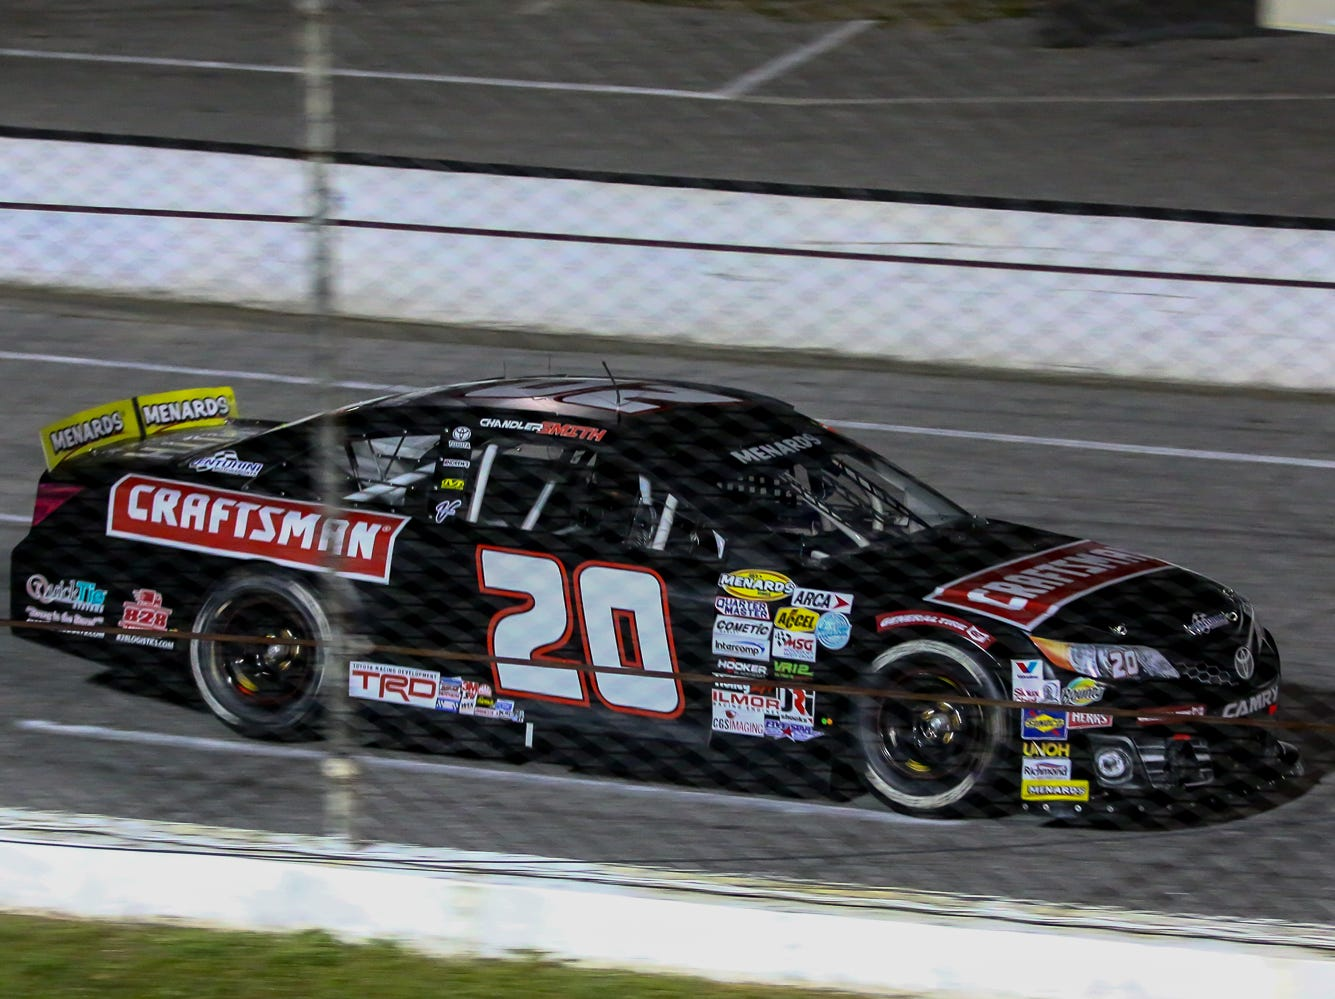 Chandler Smith (20) speeds past the grandstands during the ARCA Pensacola 200 race presented by Inspectra Thermal Solutions on Saturday, March 9, 2019, at Five Flags Speedway. Michael Self, of Salt Lake City, won the race.